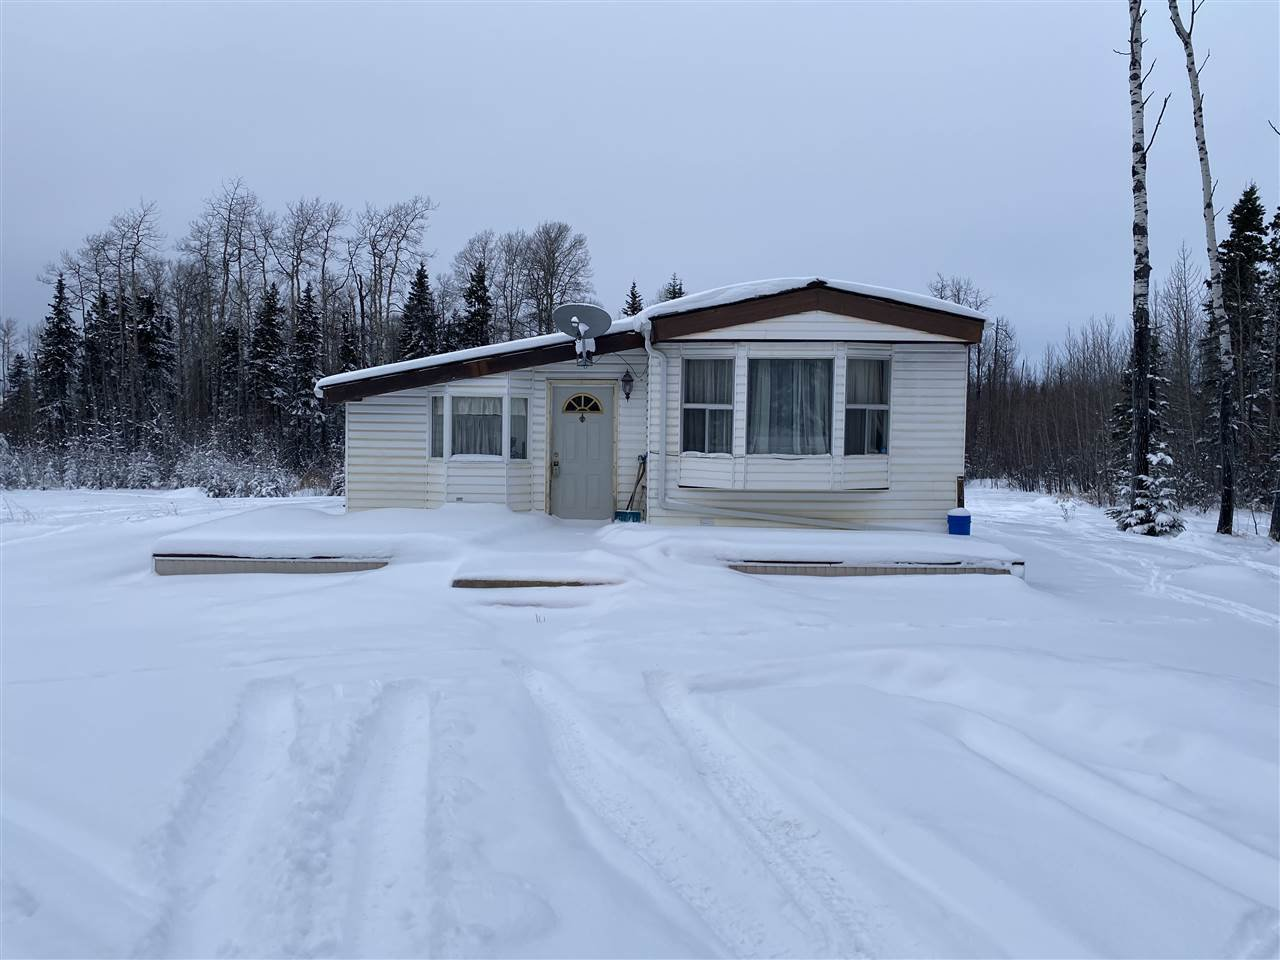 Main Photo: 14424 RED CREEK Road: Charlie Lake Manufactured Home for sale (Fort St. John (Zone 60))  : MLS®# R2512707